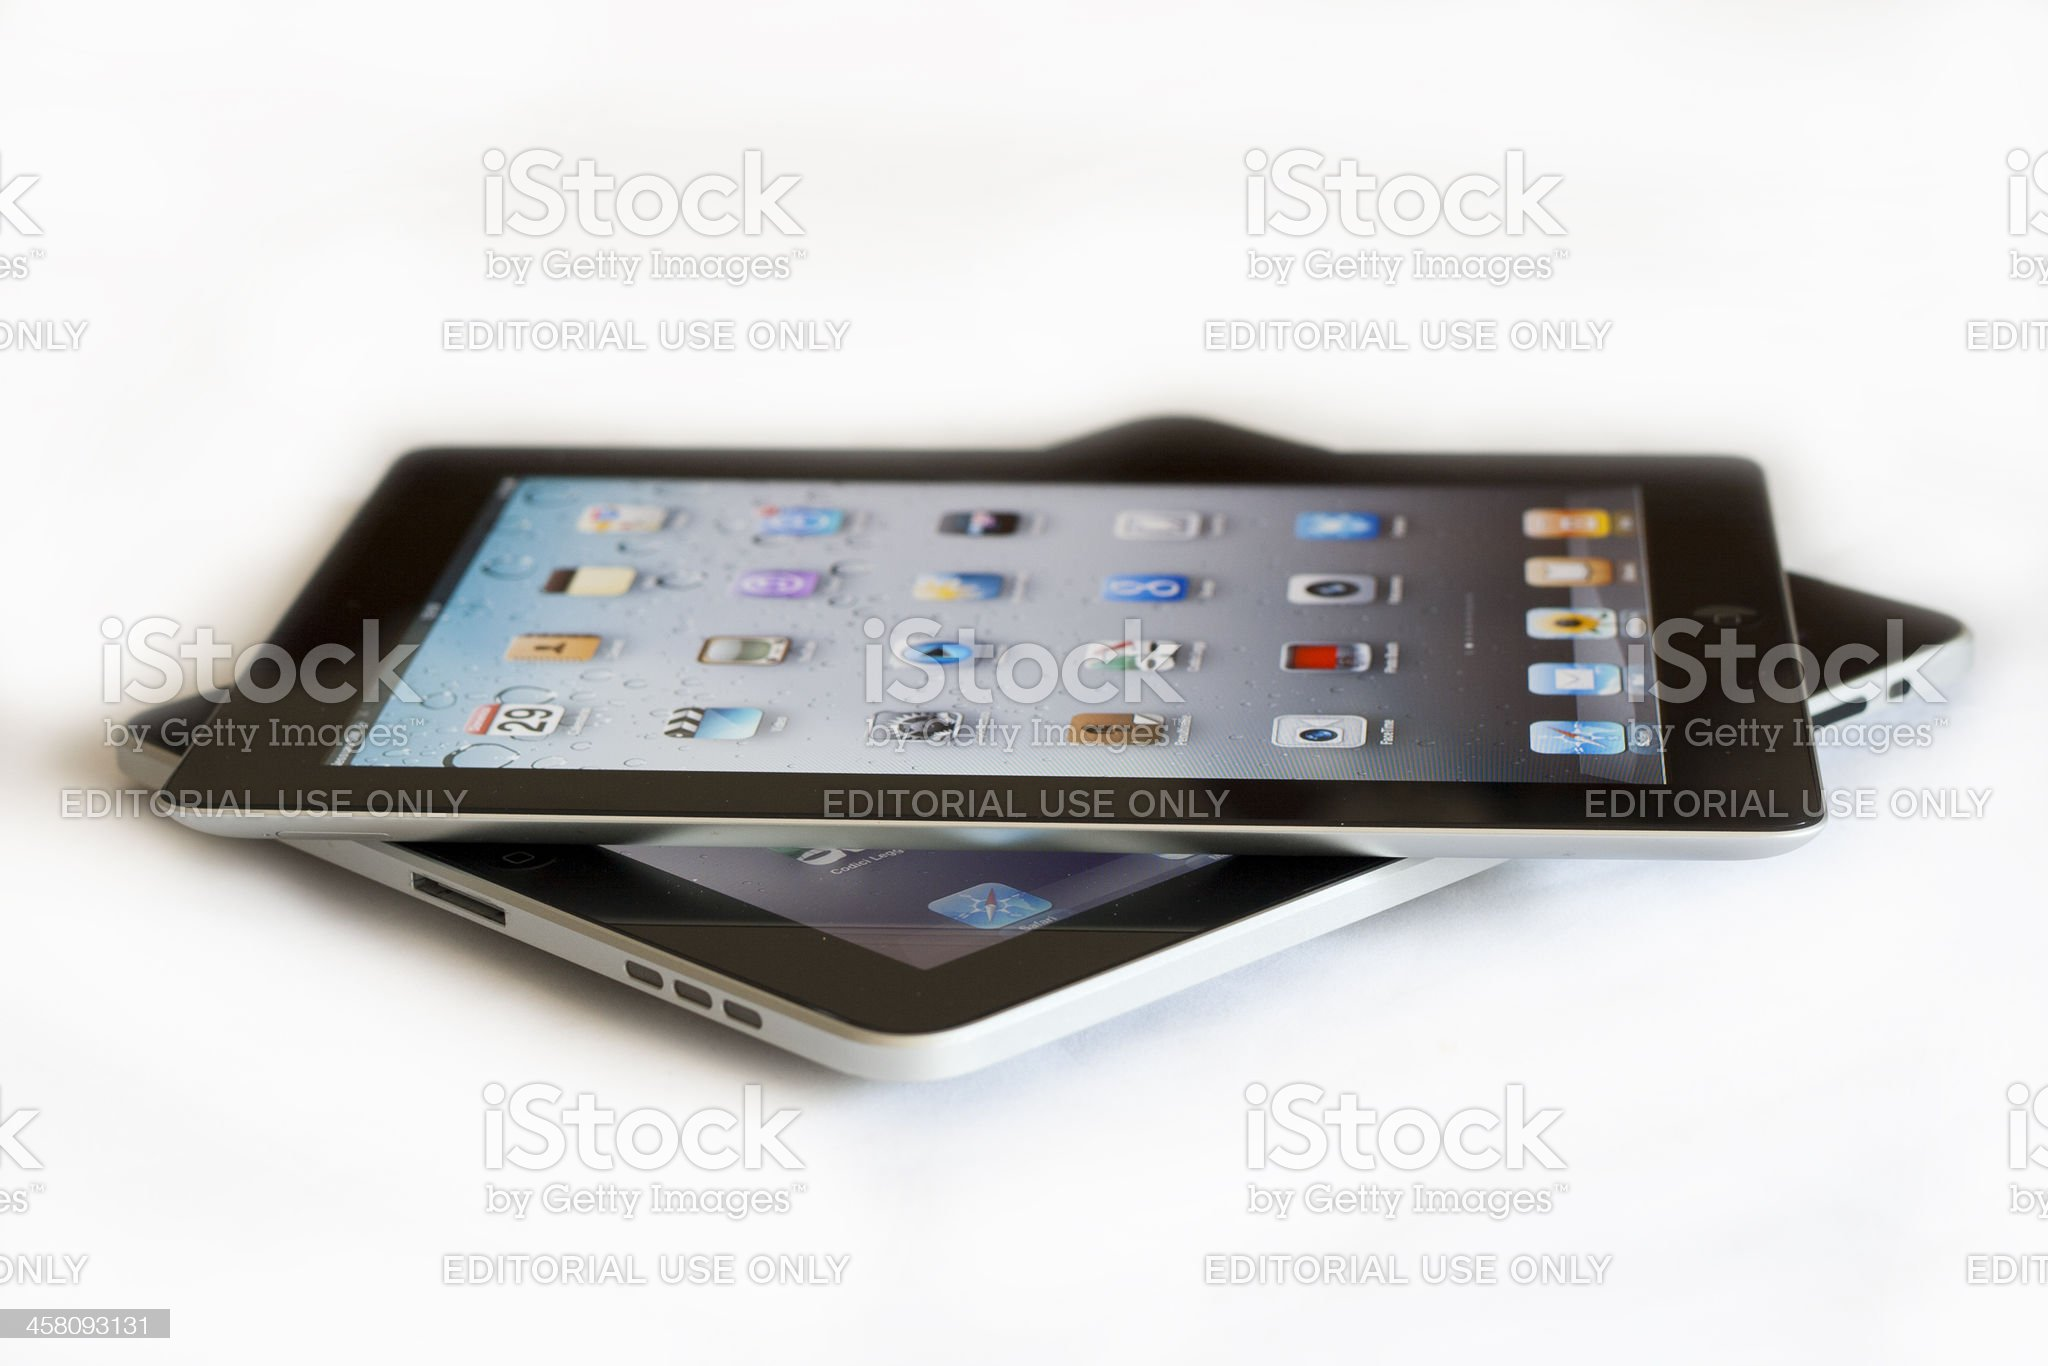 Apple ipad 2 vs the first version royalty-free stock photo